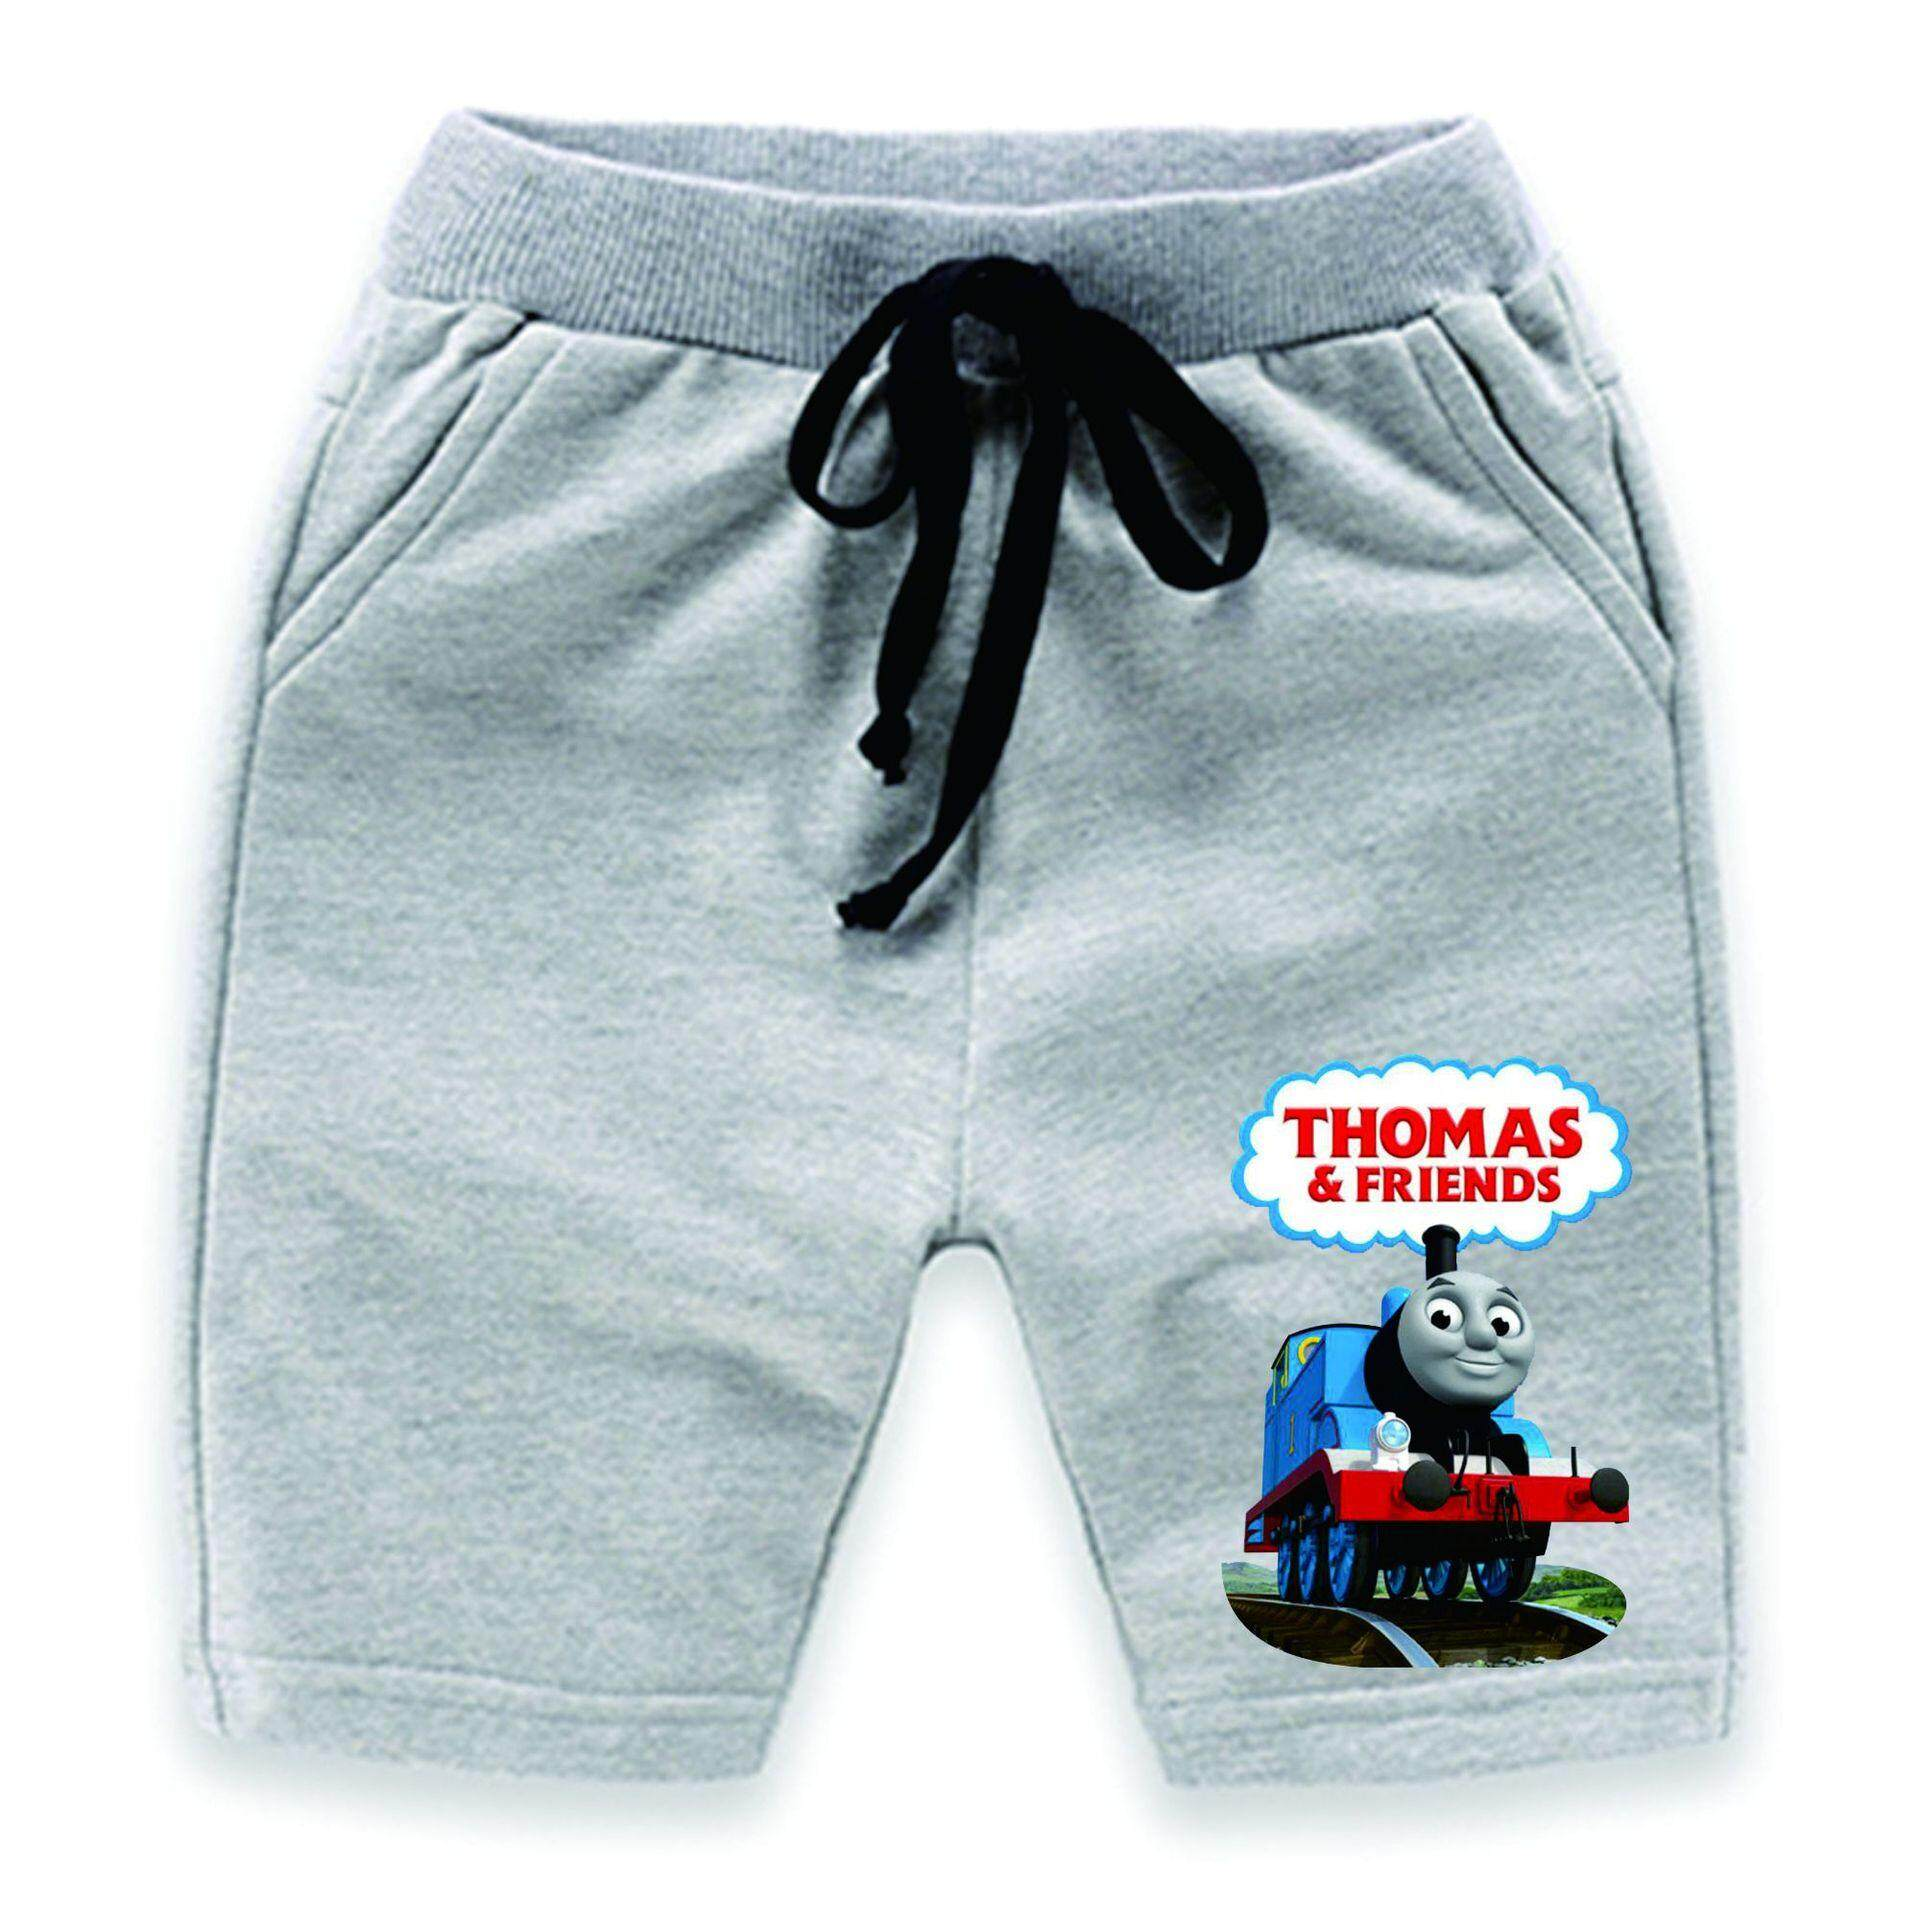 Thomas children's clothing new Thomas pattern shorts cotton shorts cartoon children's shorts unisex